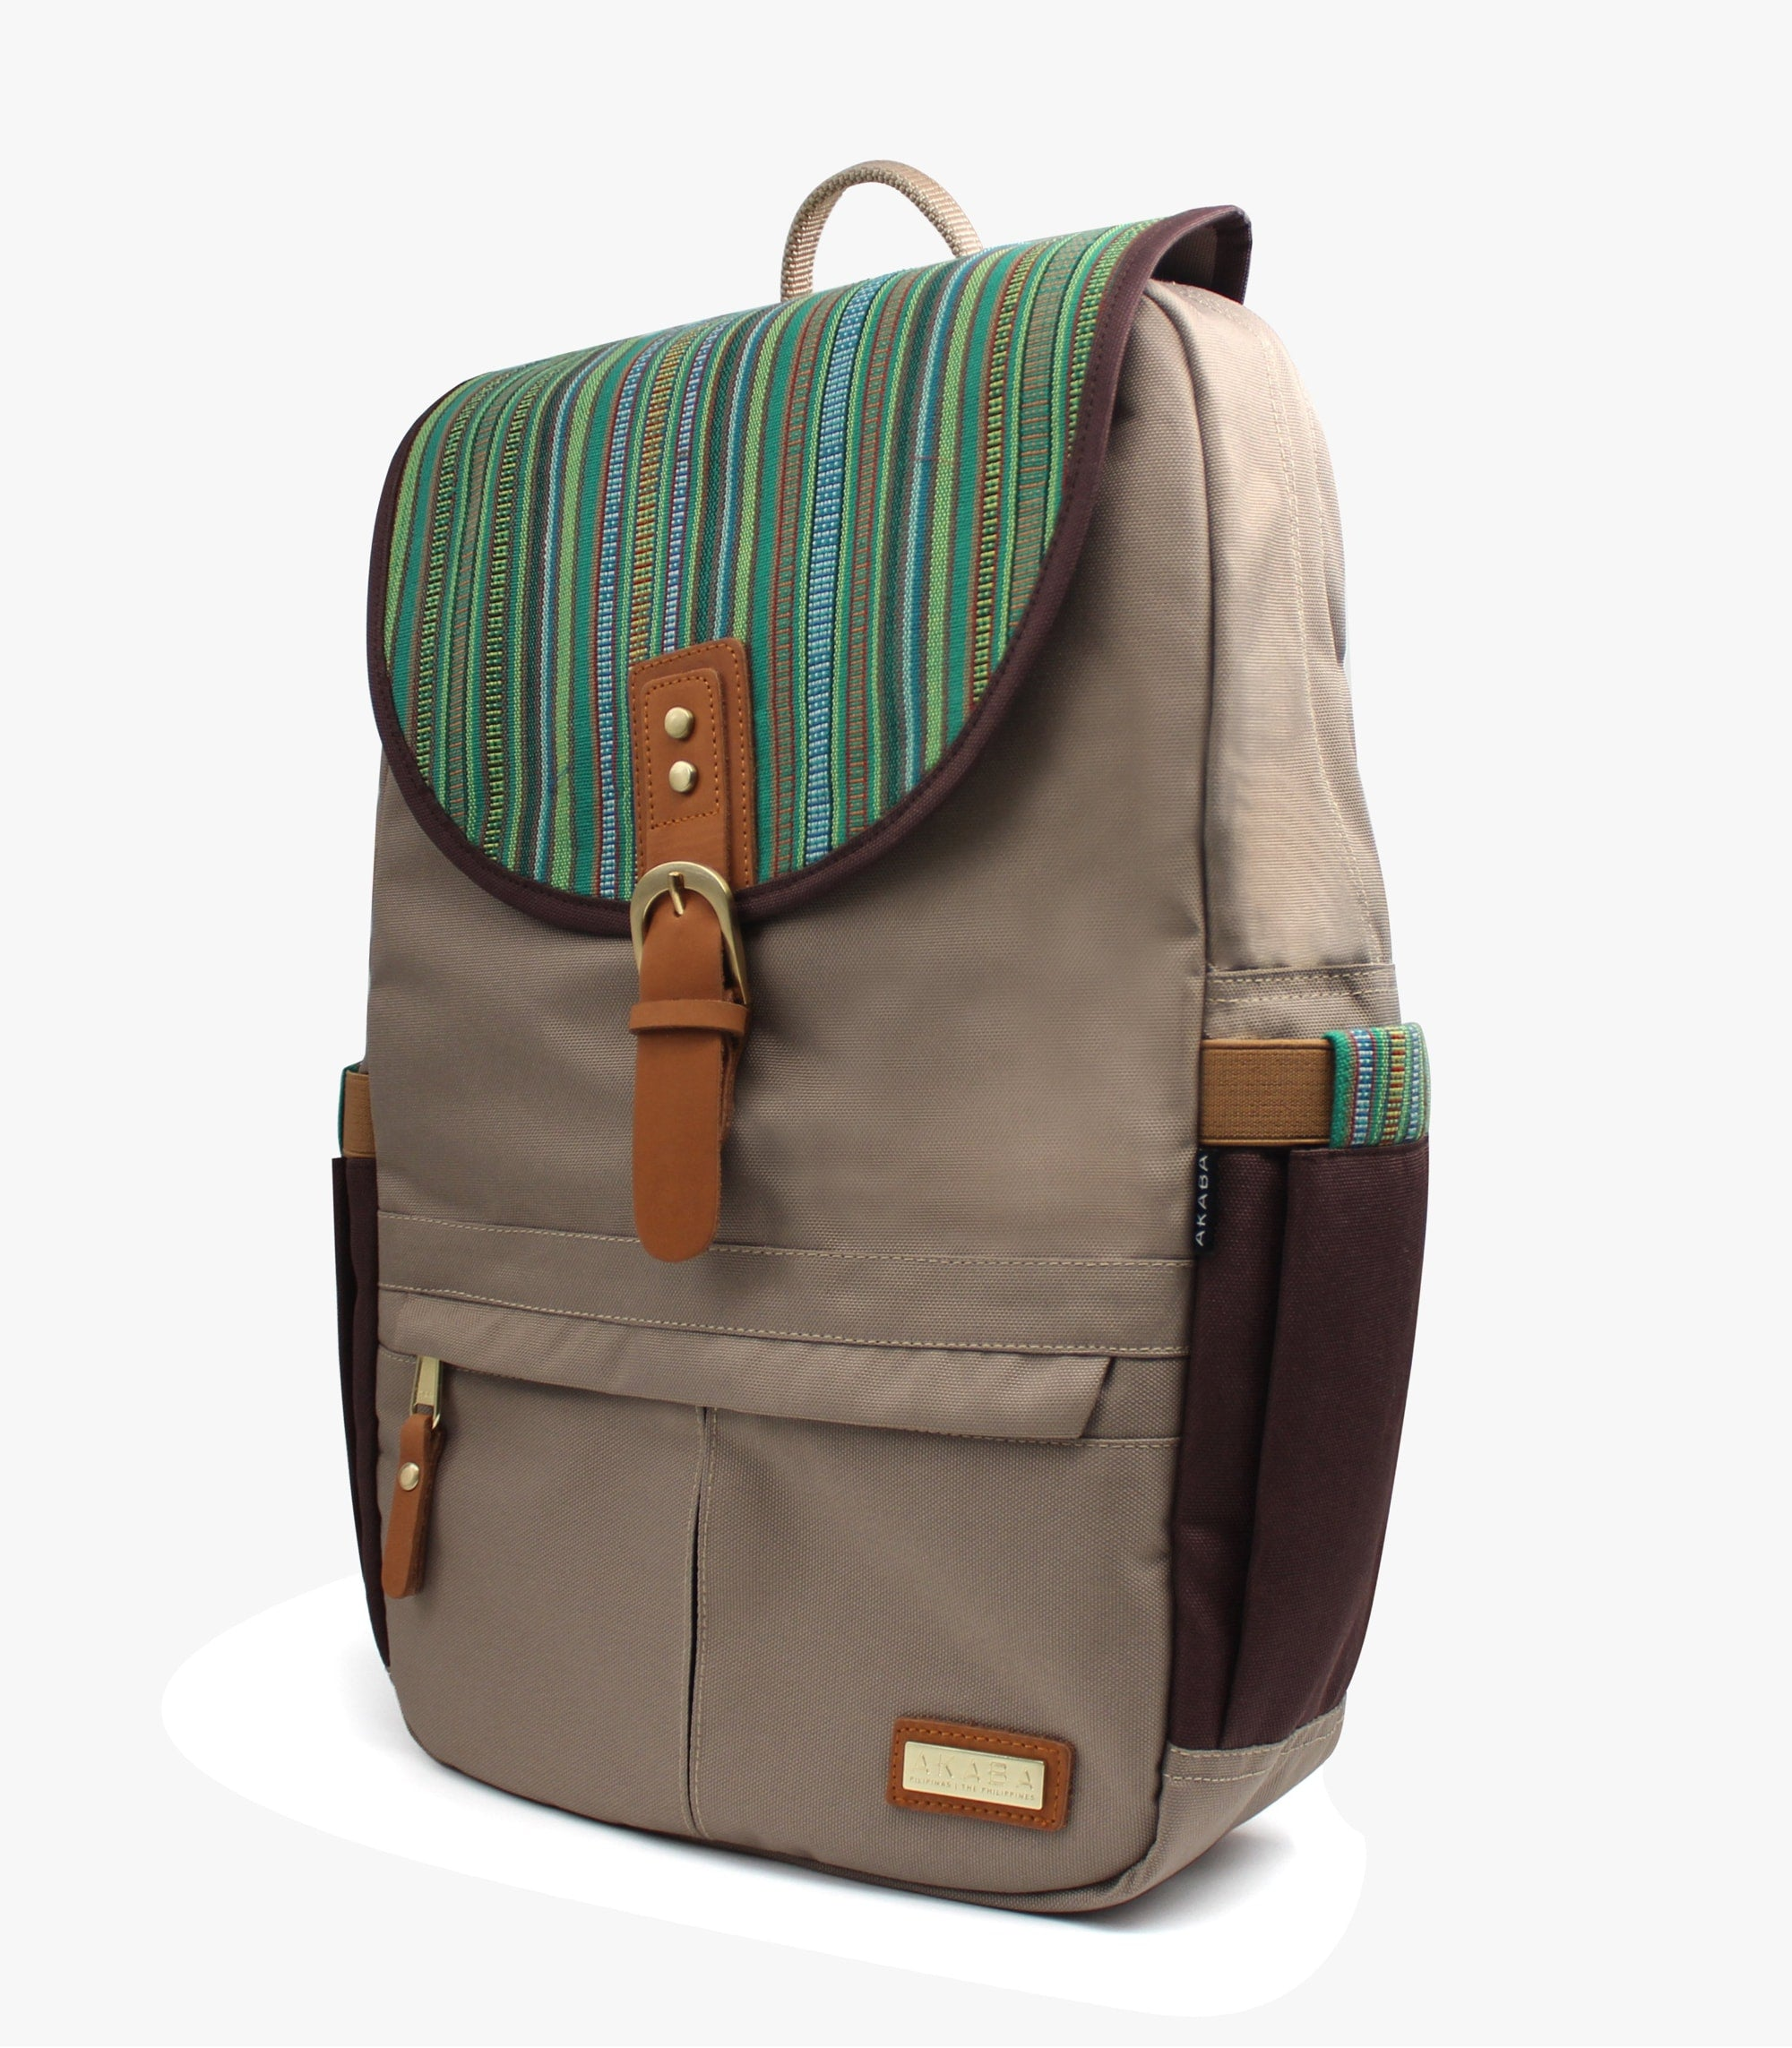 Camino Dos Backpack - AKABA - Green Side